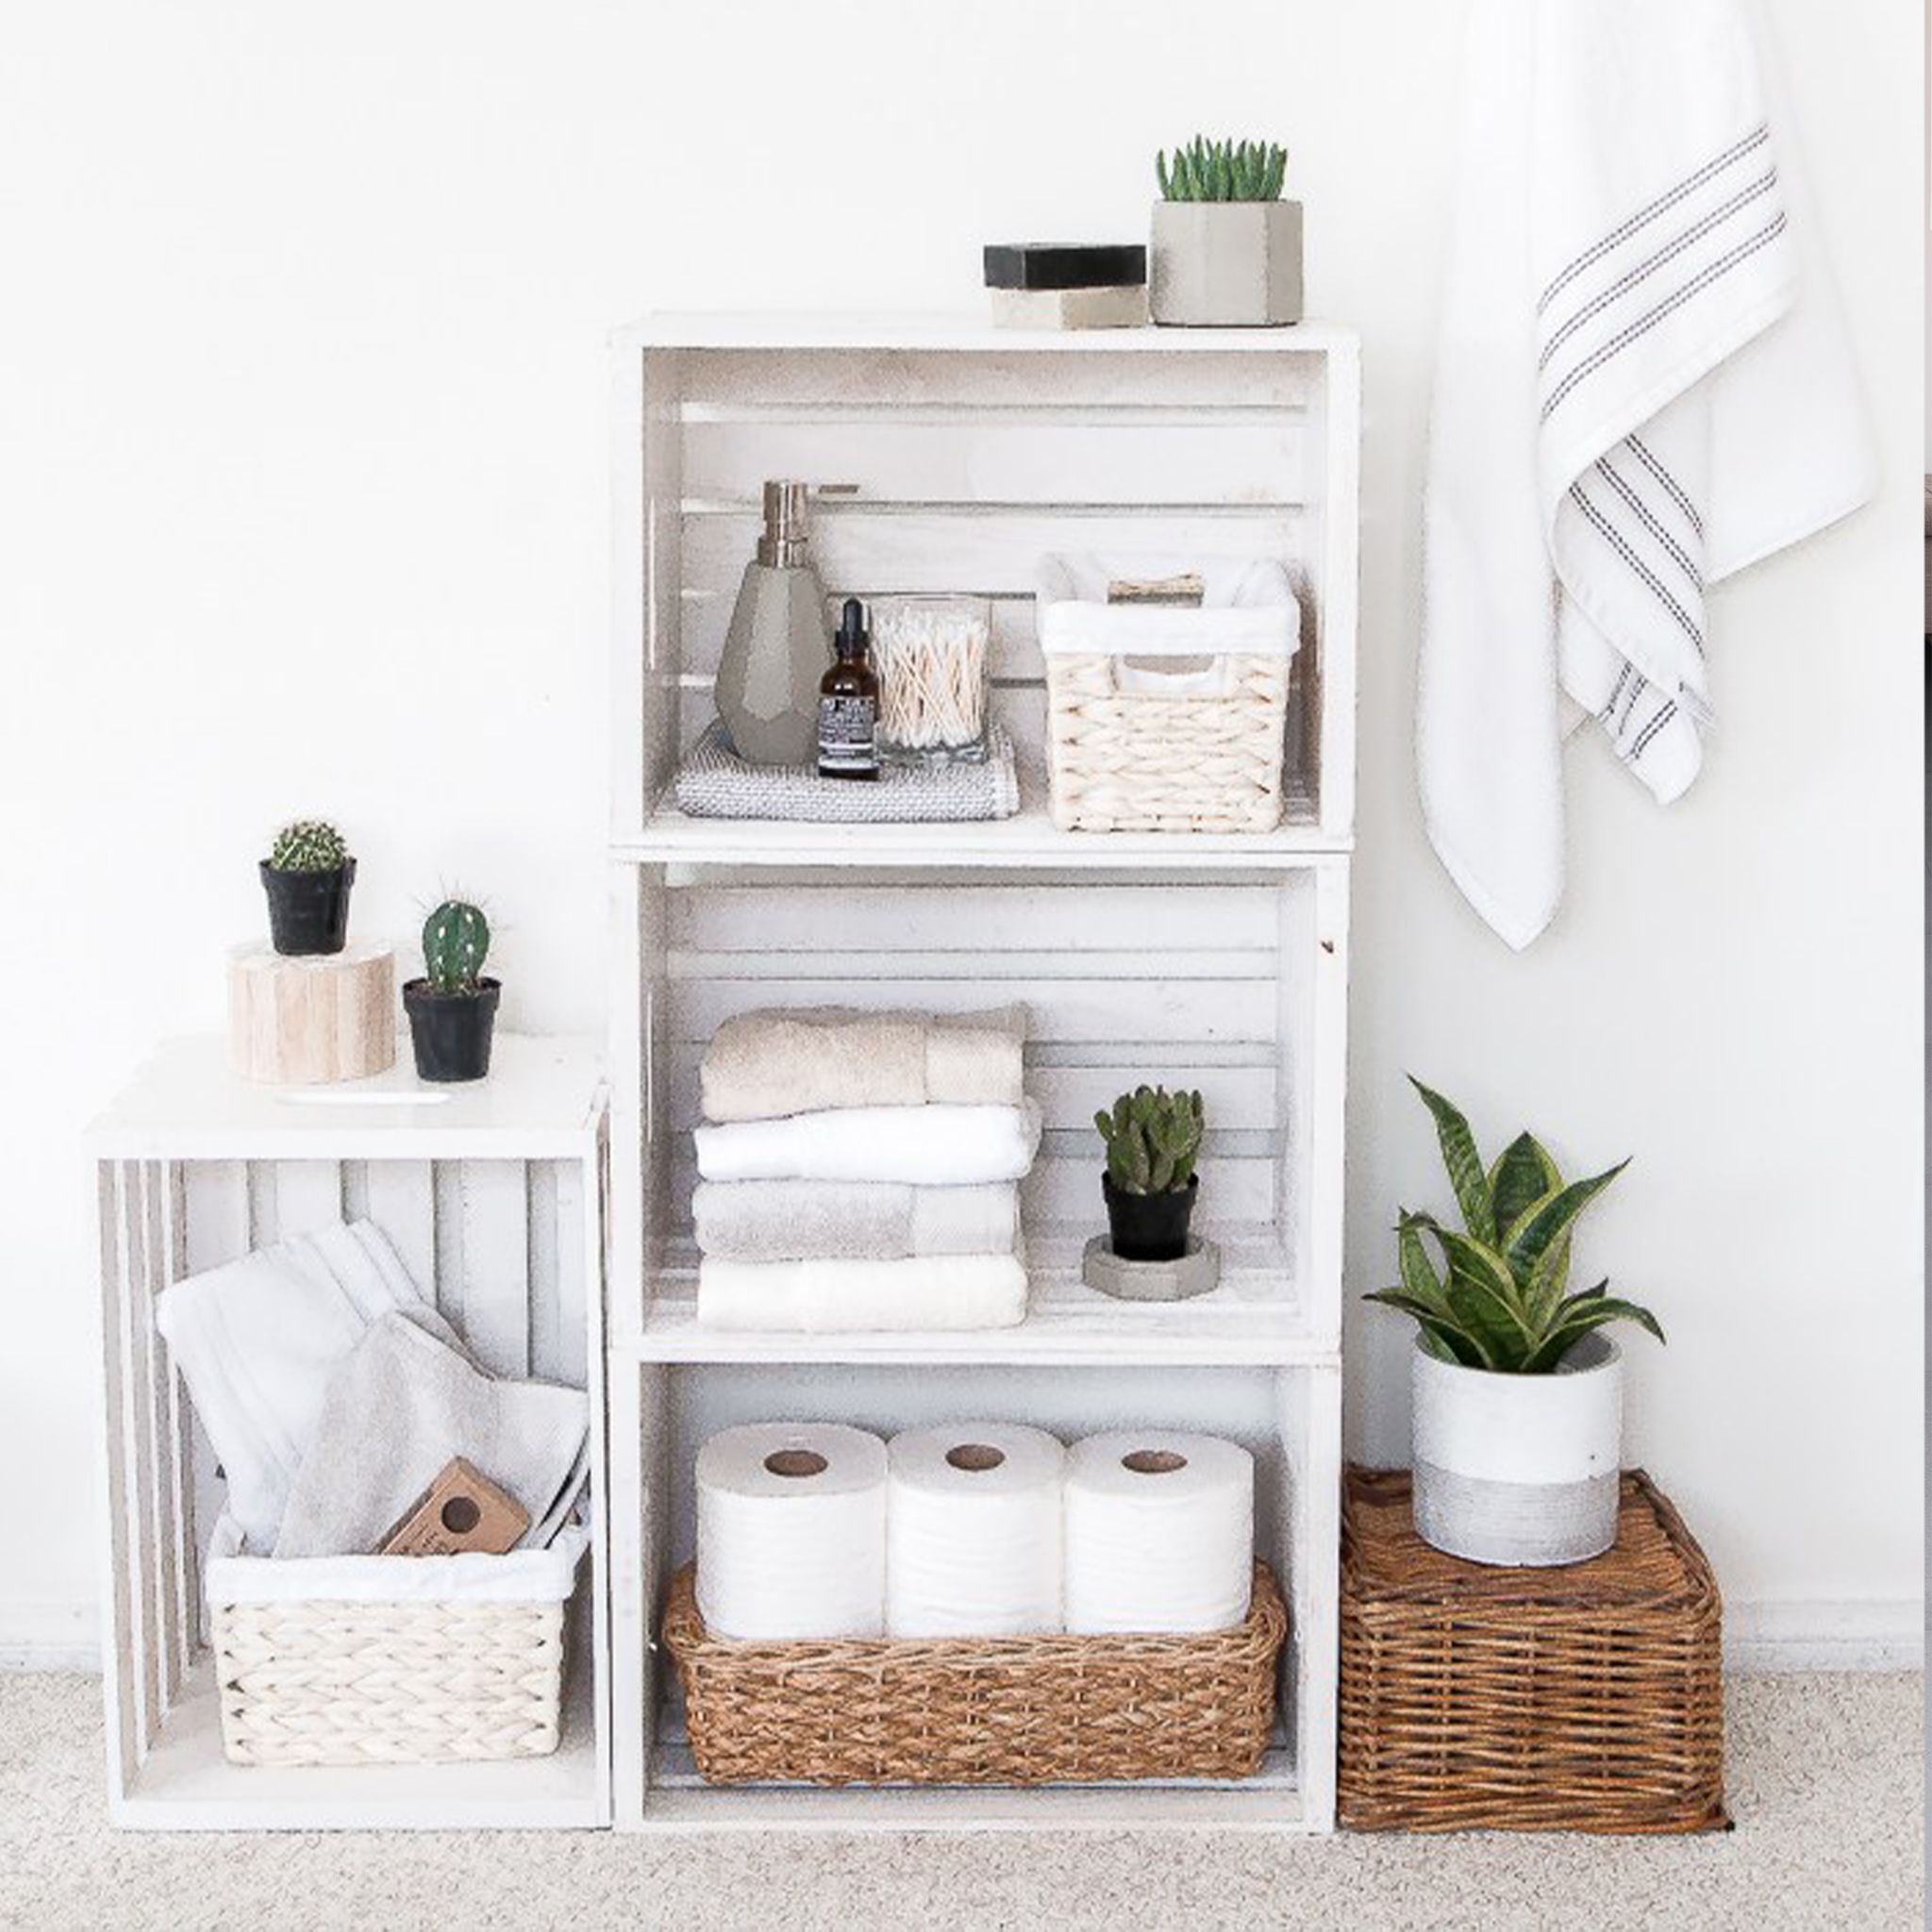 This Beautiful Unit Is A Diy Project That Is Perfect For You To Do